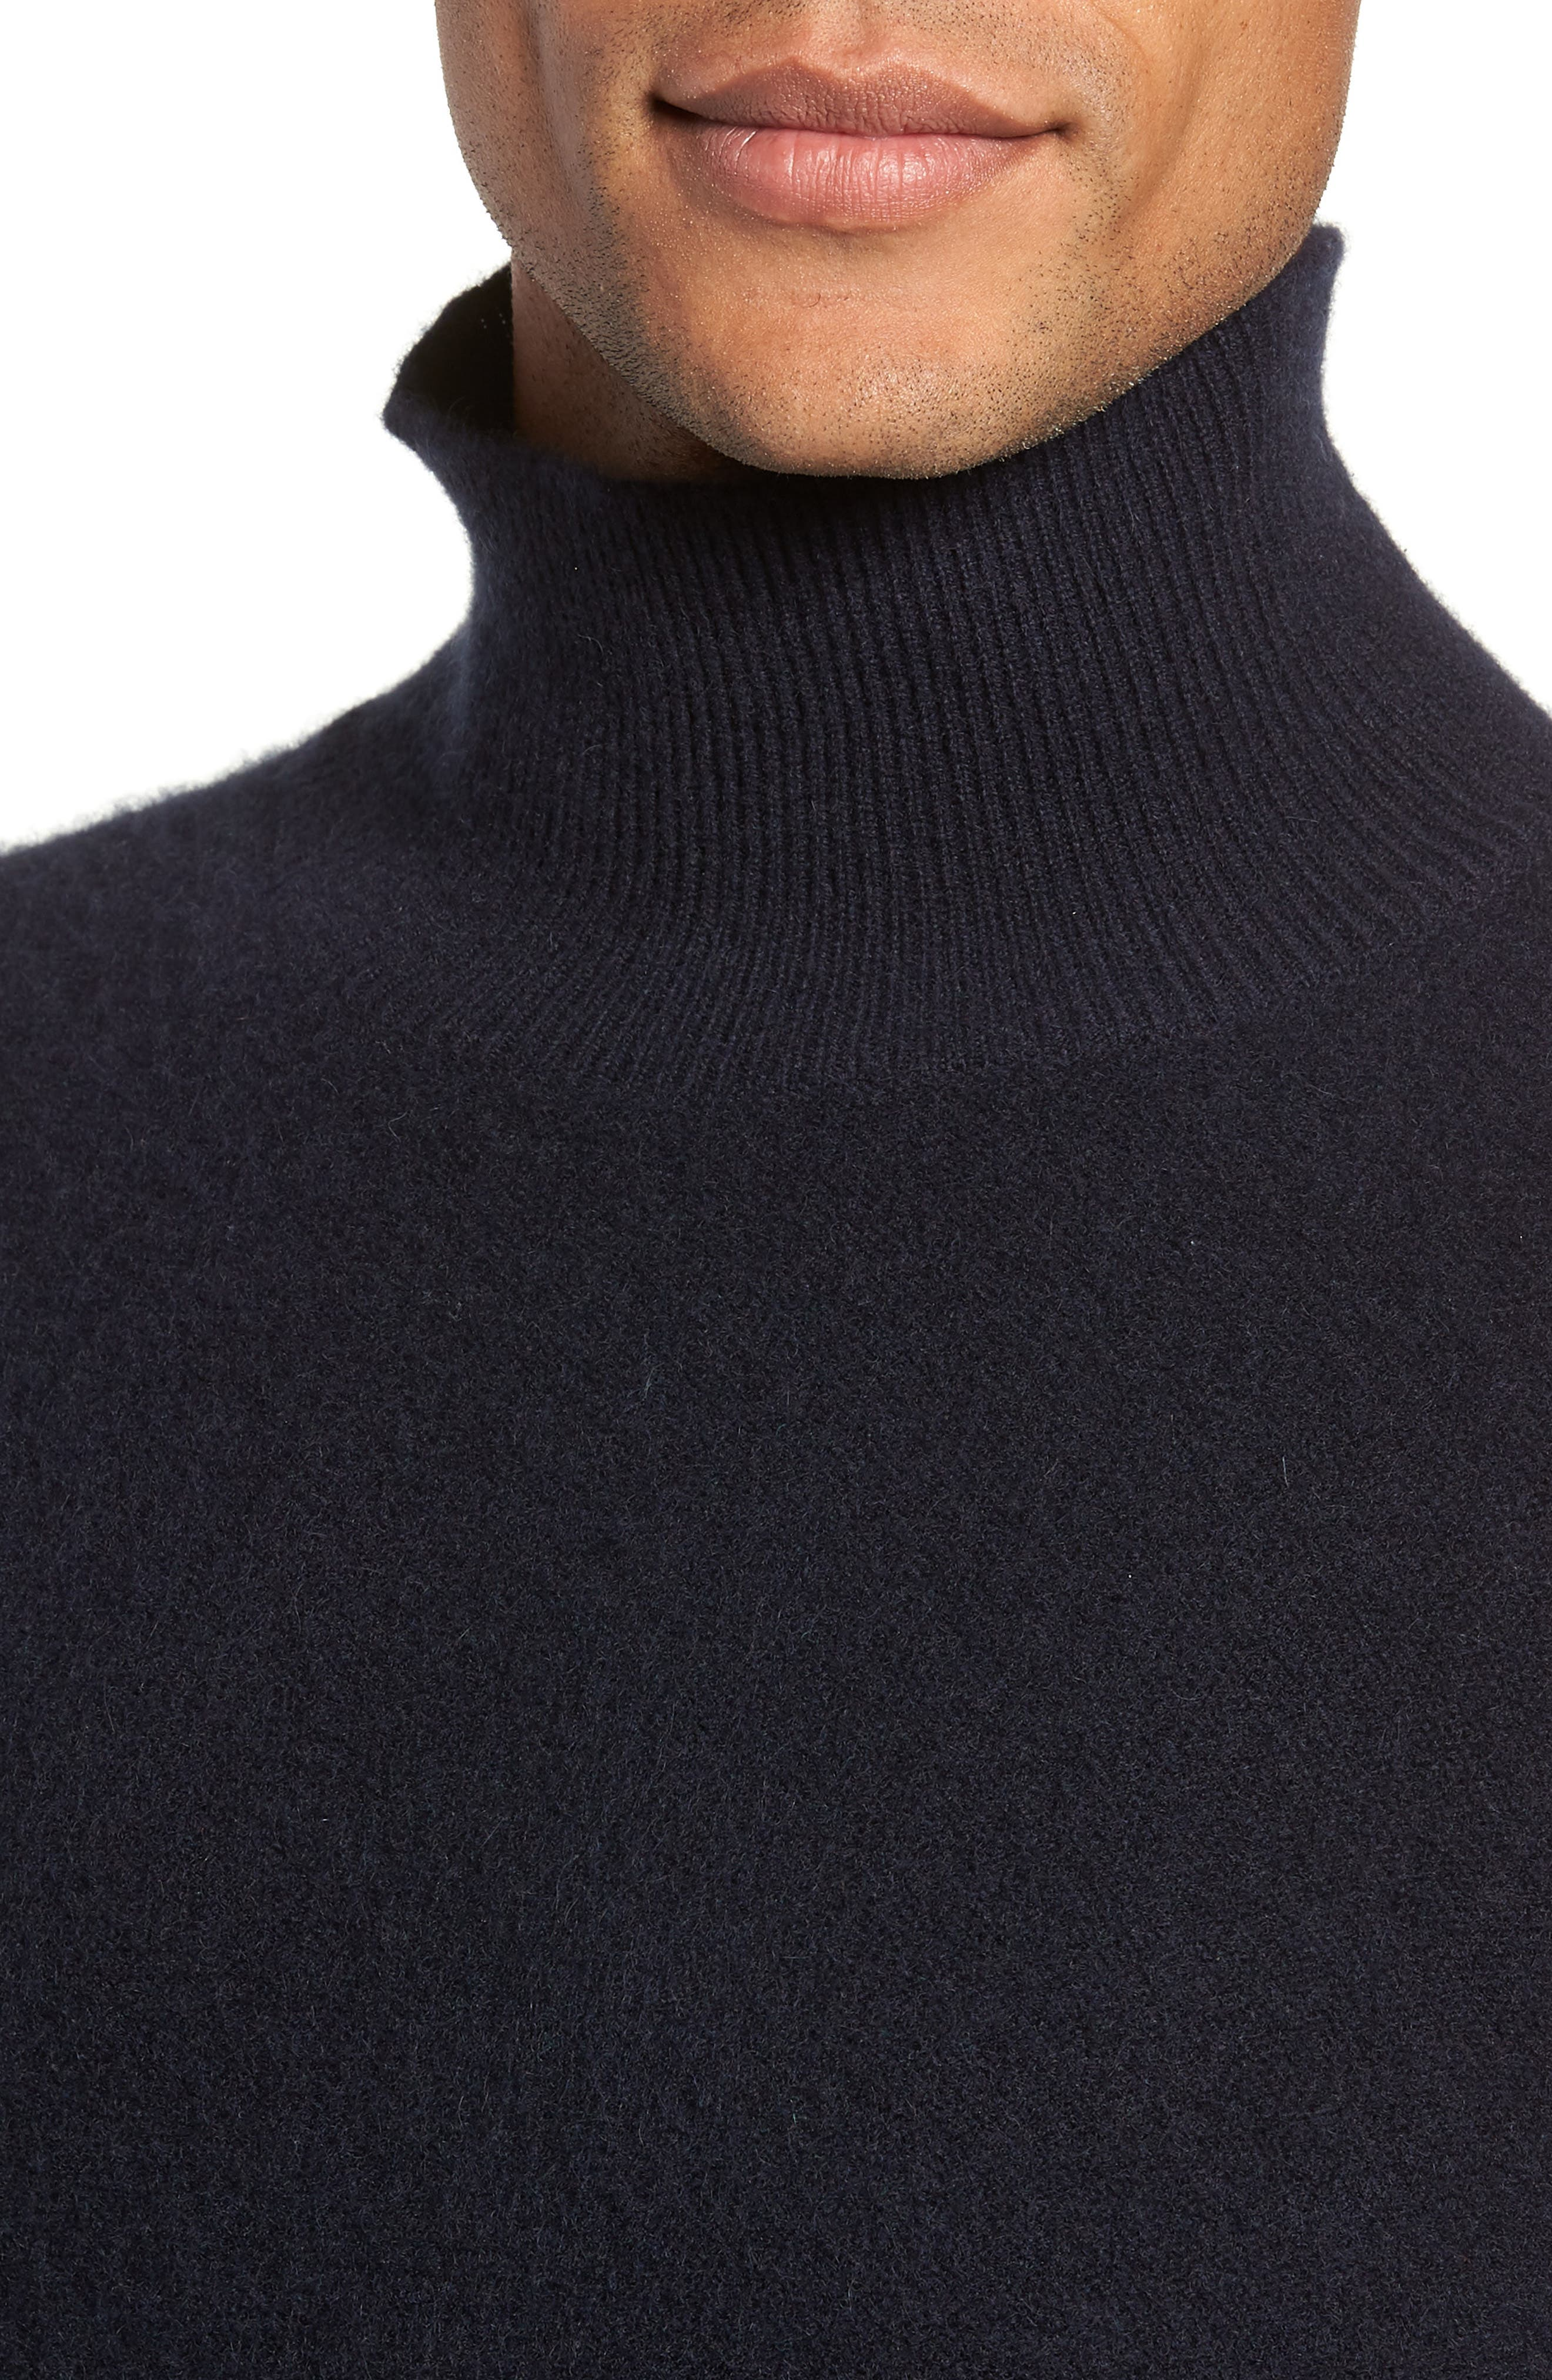 Ribbed Cashmere Turtleneck Sweater,                             Alternate thumbnail 4, color,                             COASTAL